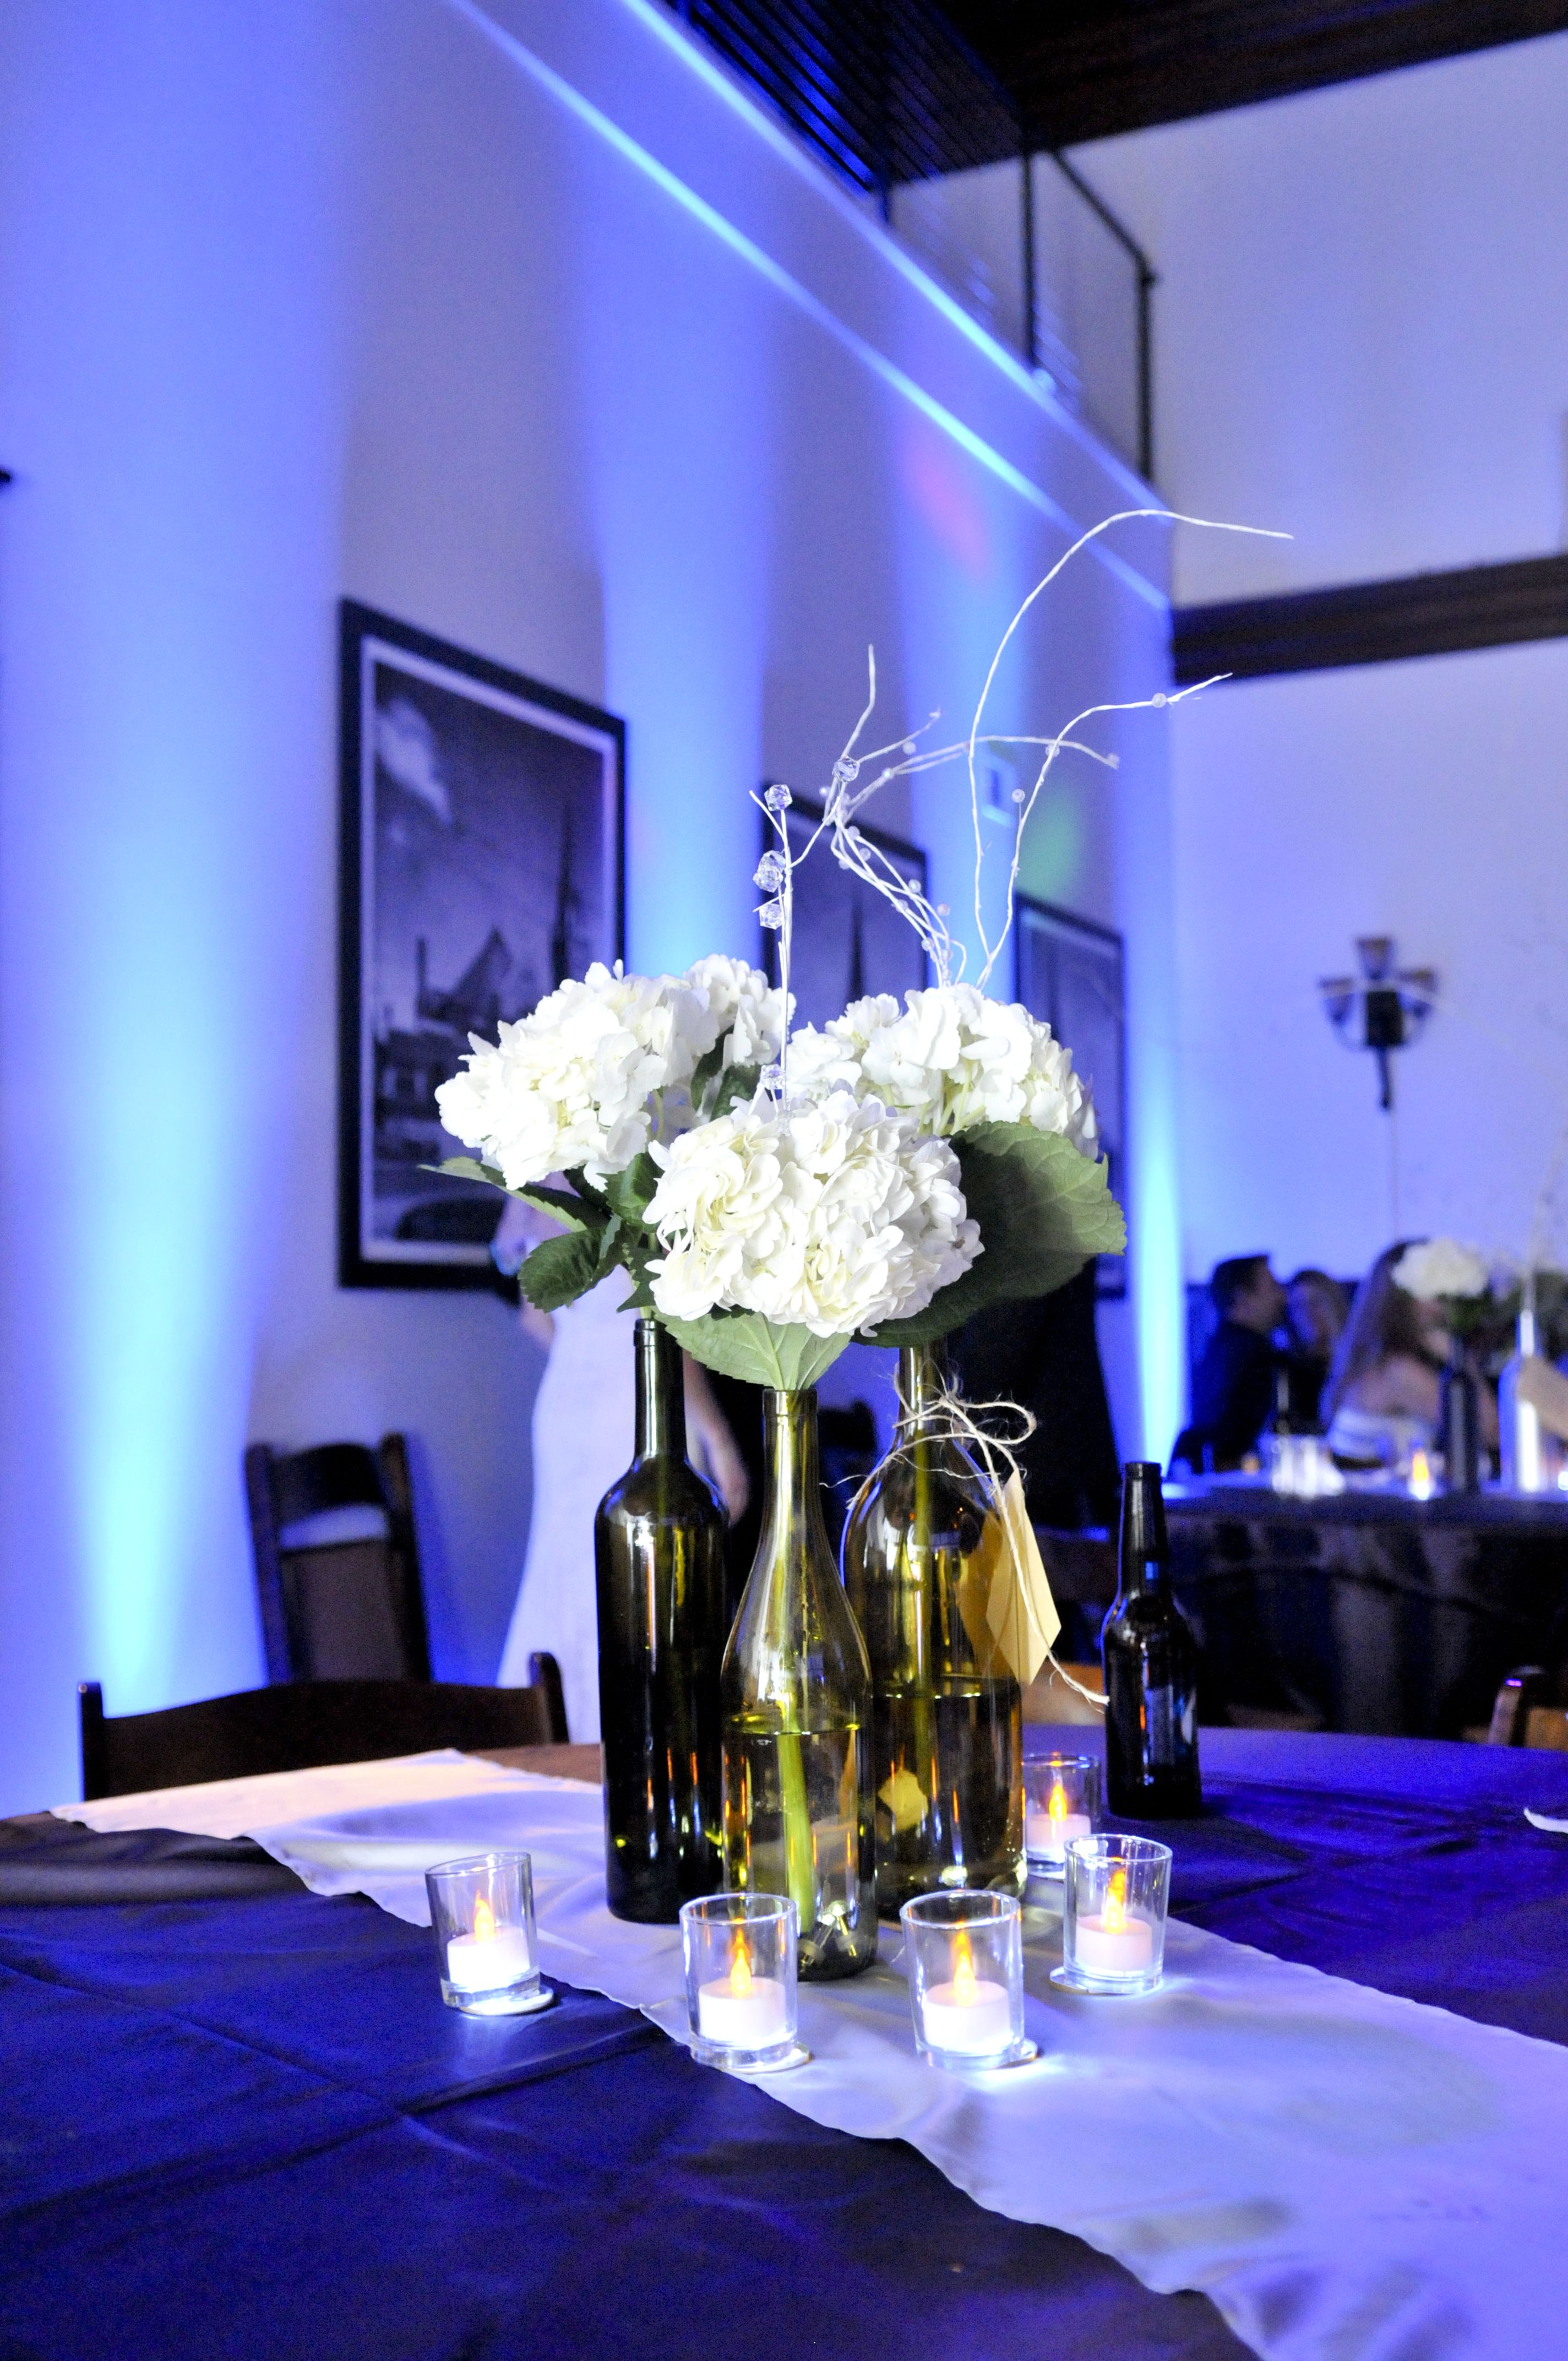 Lights For Wine Bottles Partyzone Productions Wine Bottle Centerpieces With Waterproof